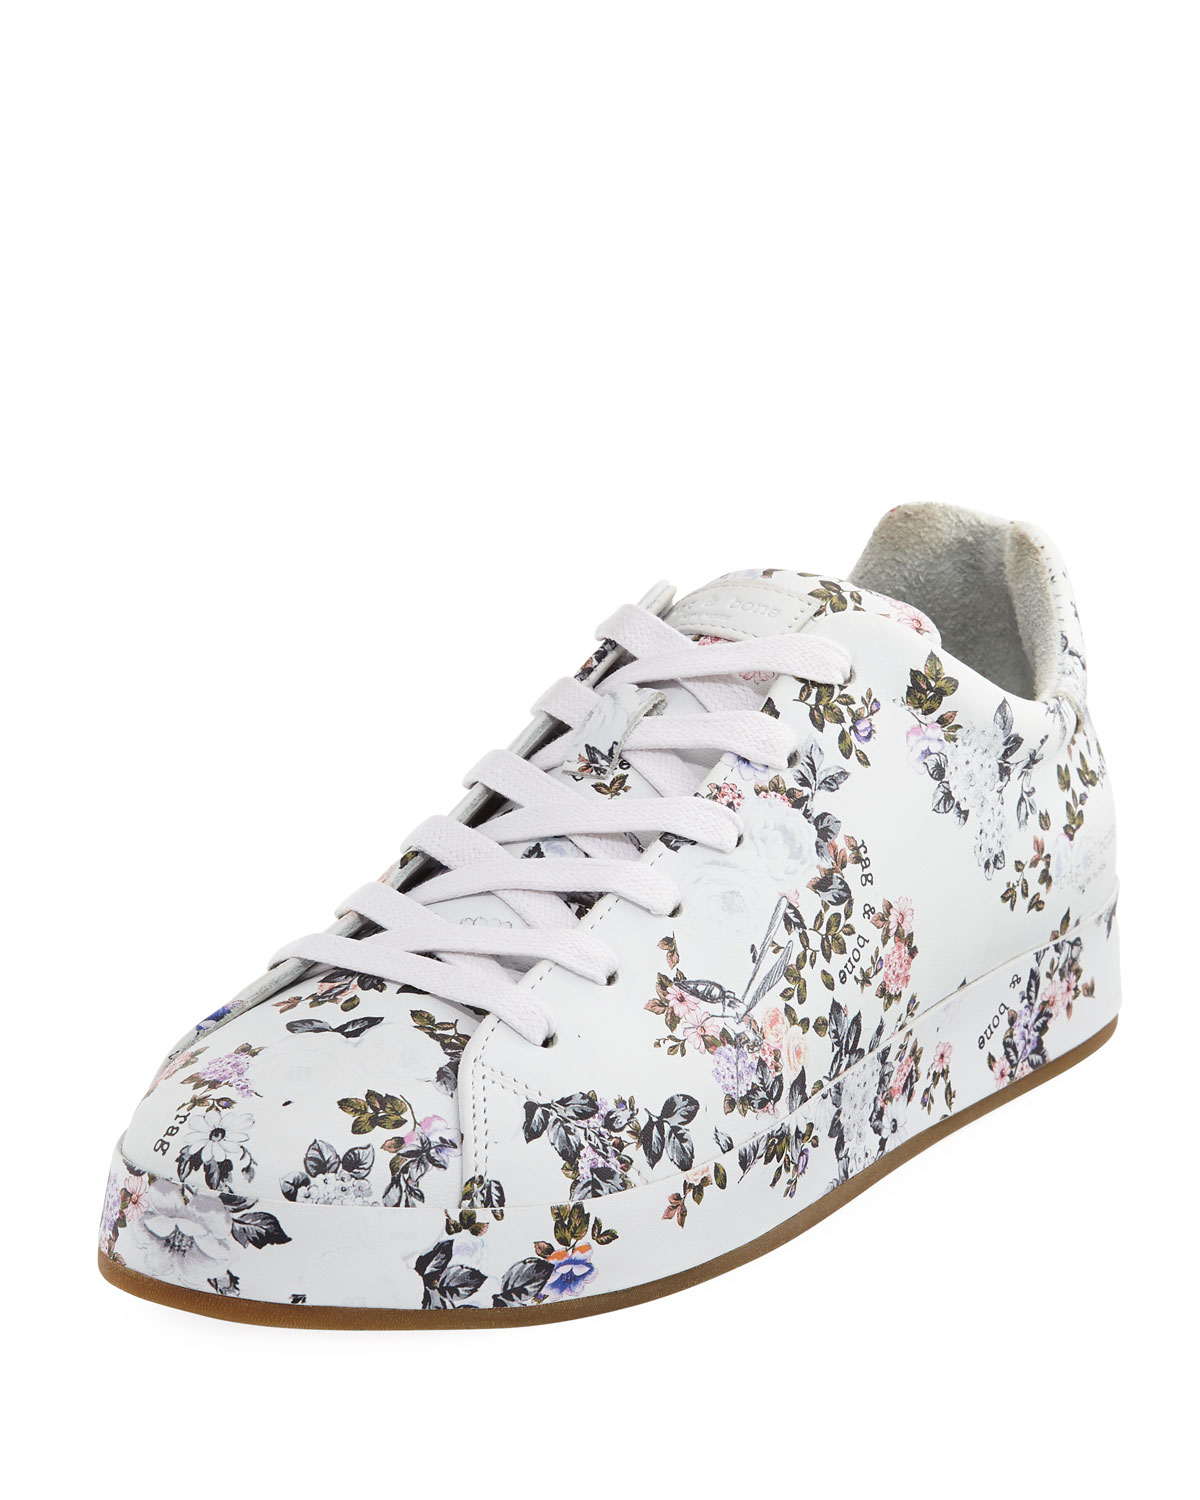 RAG&BONE Women's Floral Print Leather Lace Up Platform Sneakers RO3zT